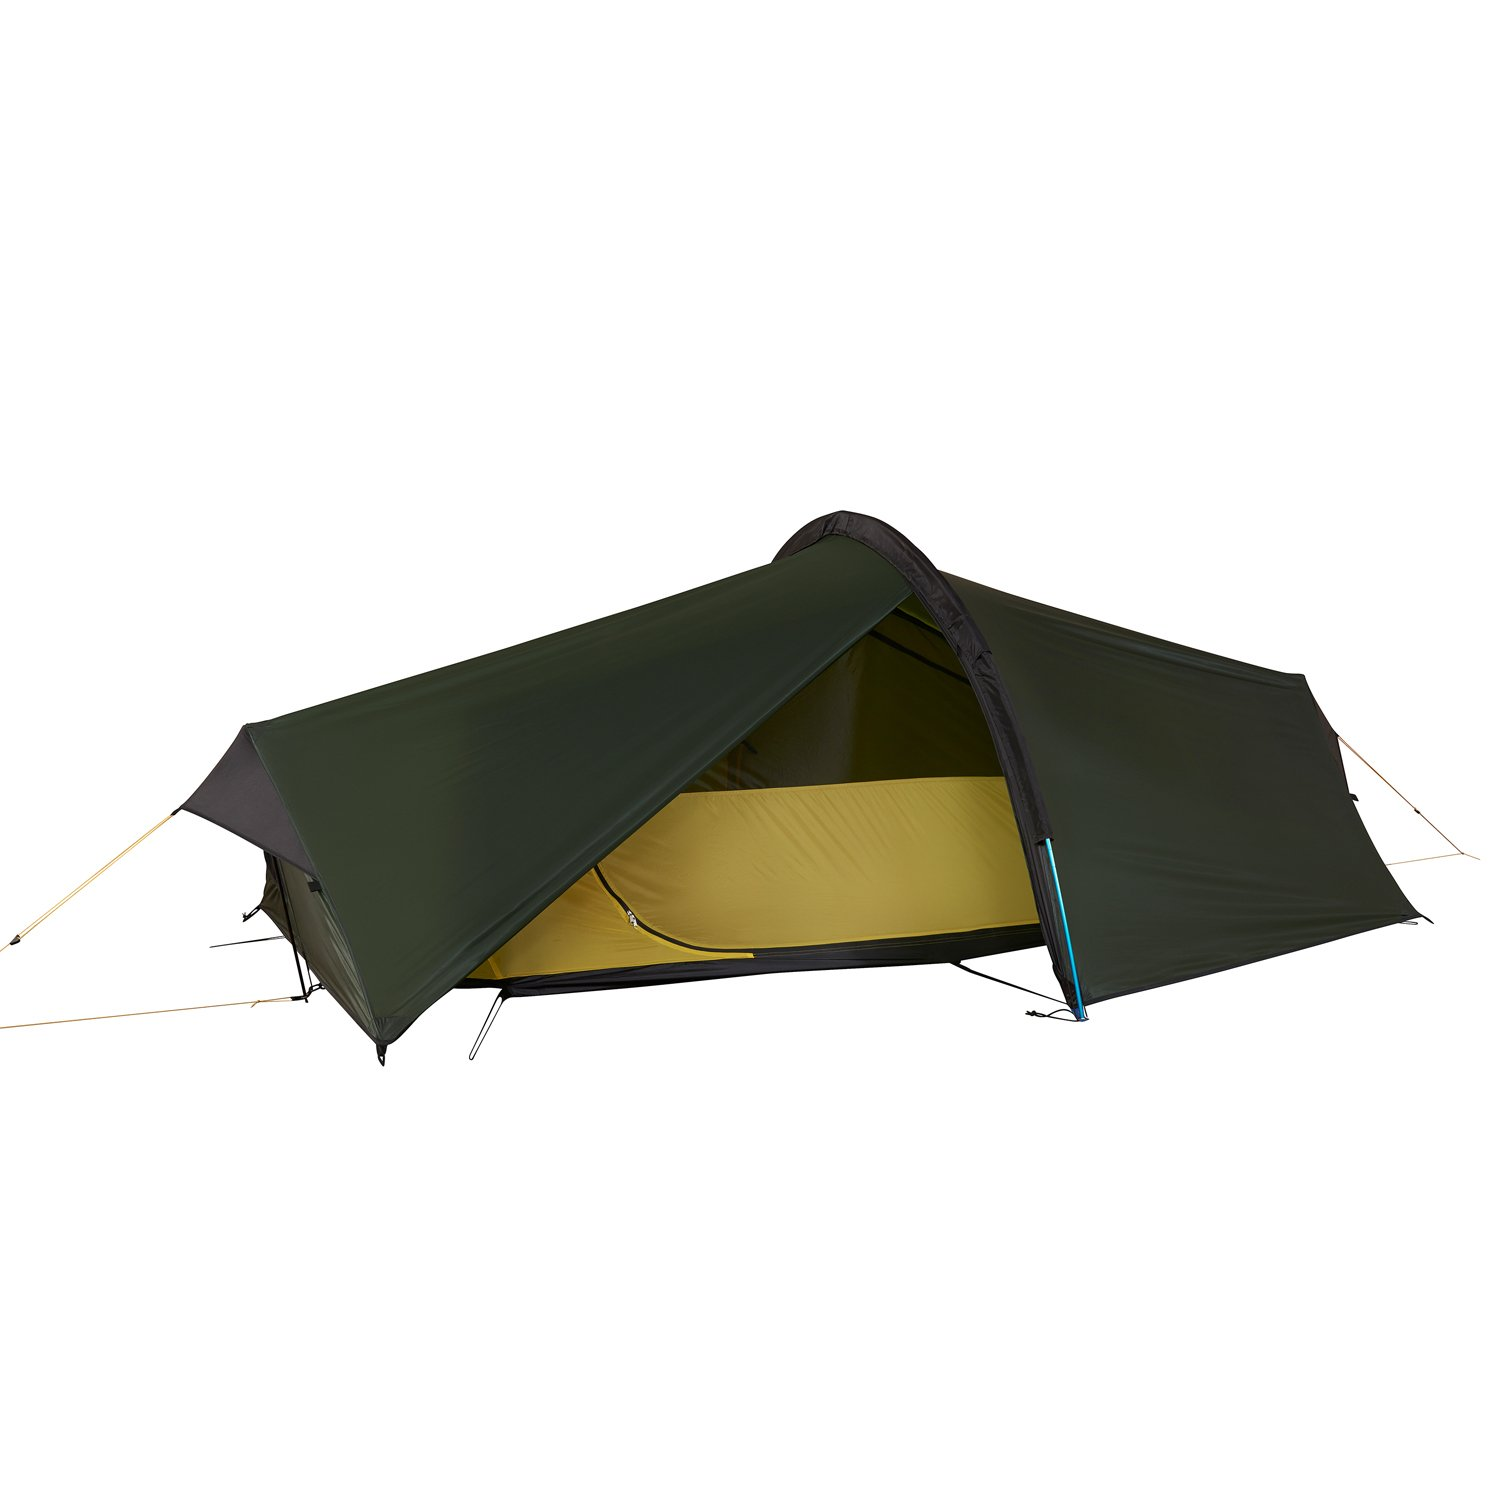 Laser Competition 2 Lightweight Backpacking Tent  sc 1 st  Terra Nova Equipment & Ultralight / Lightweight Tents from Terra Nova Equipment - Terra ...